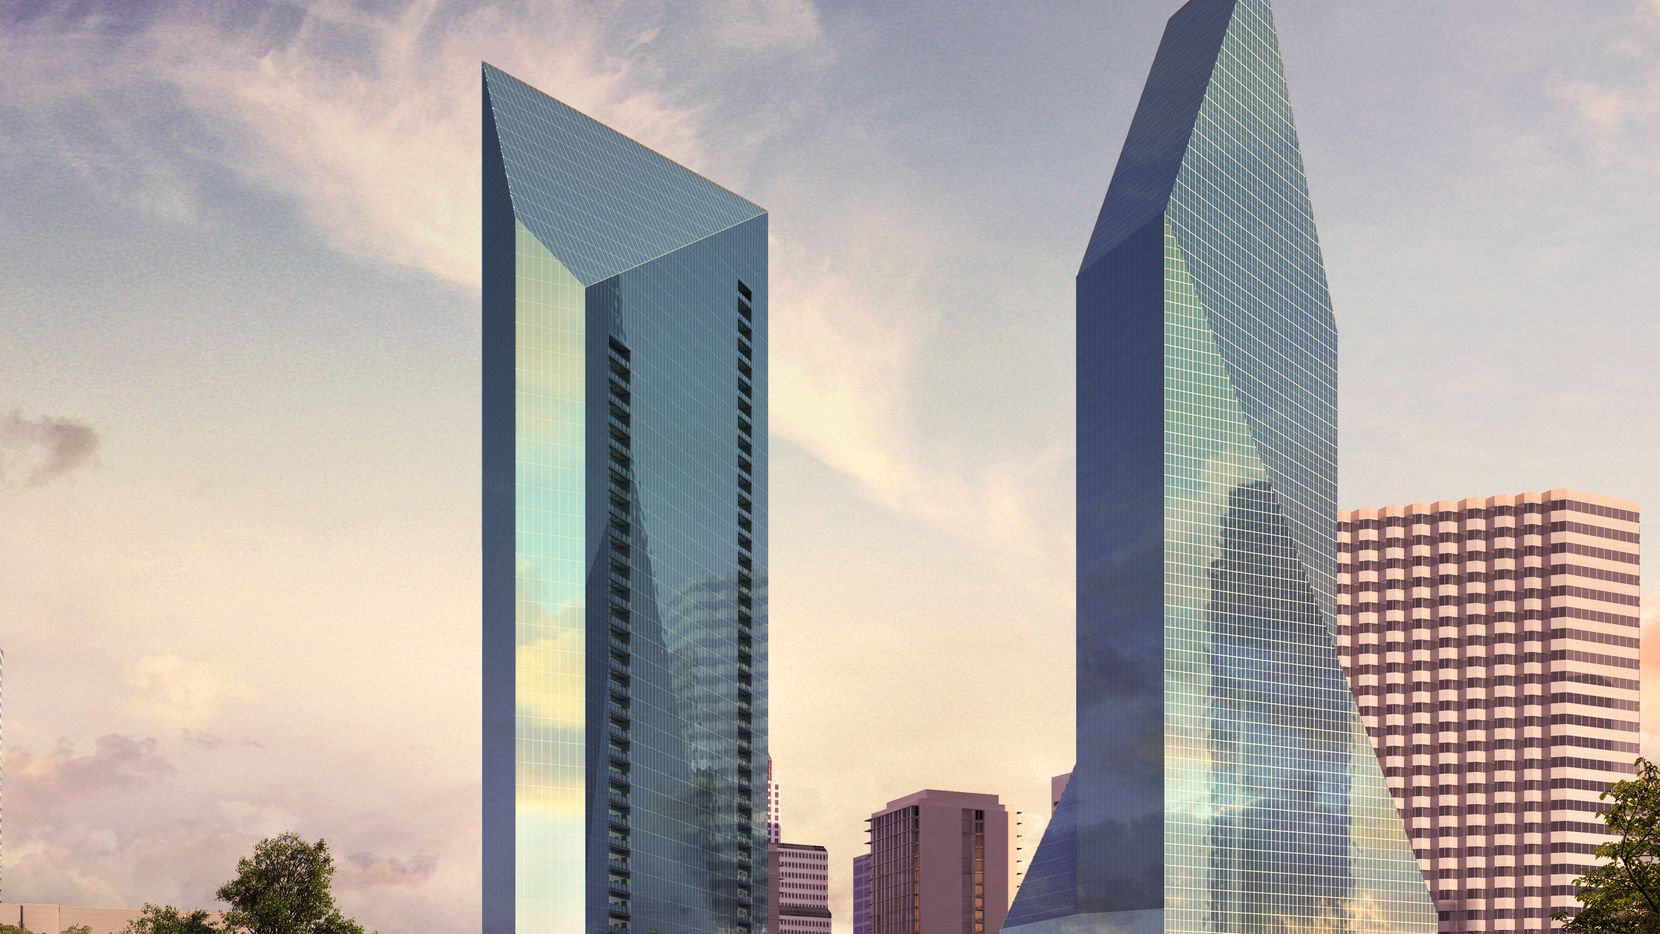 Striking new skyscraper in downtown Dallas will be tallest